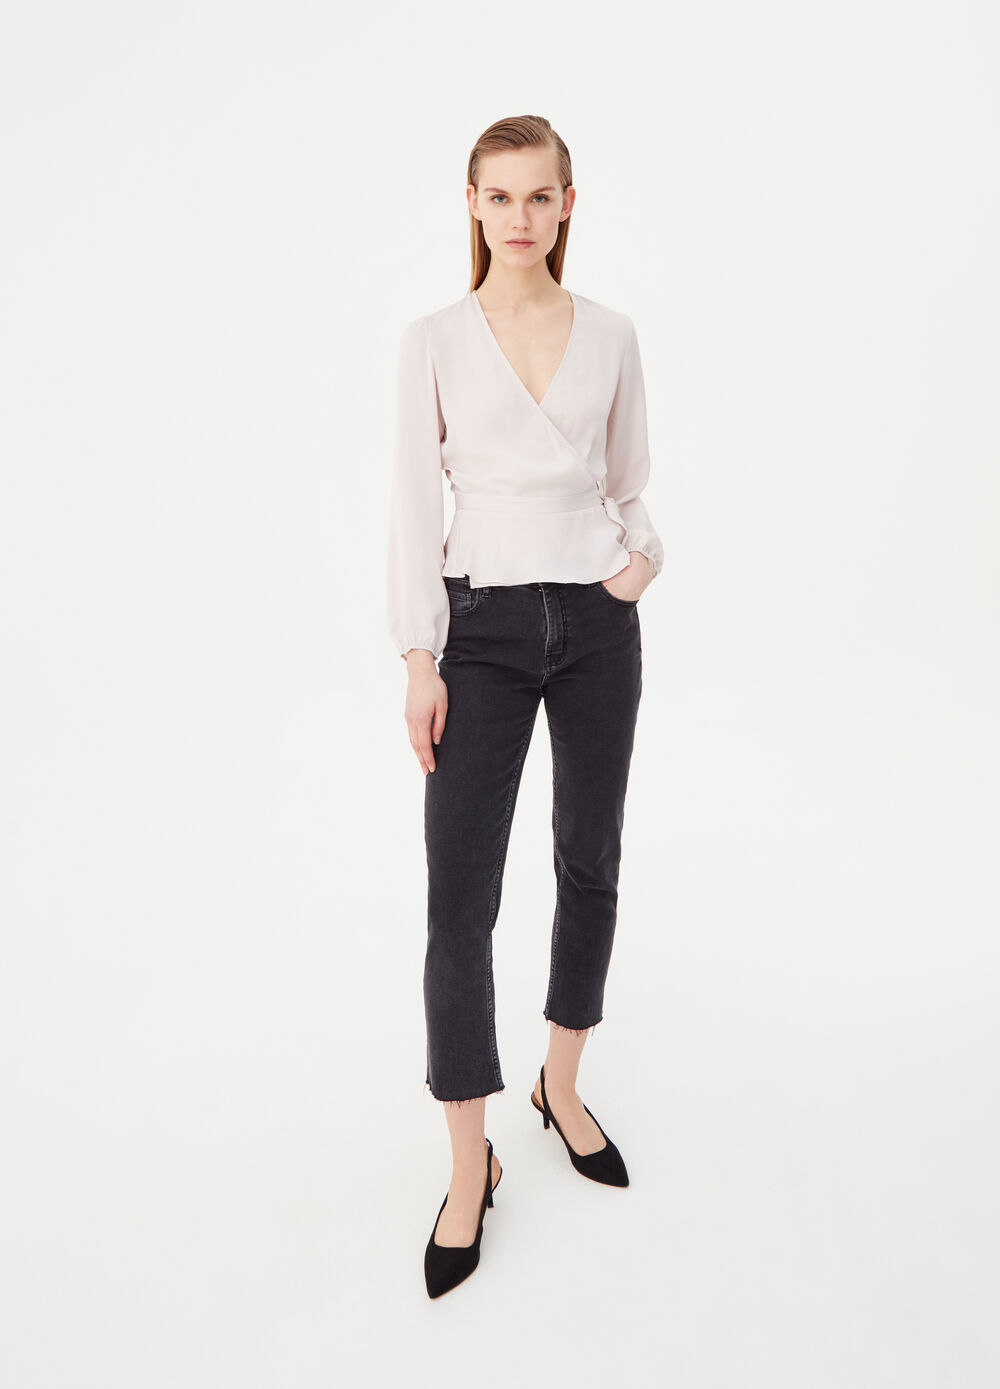 Crossover blouse on the front and belt